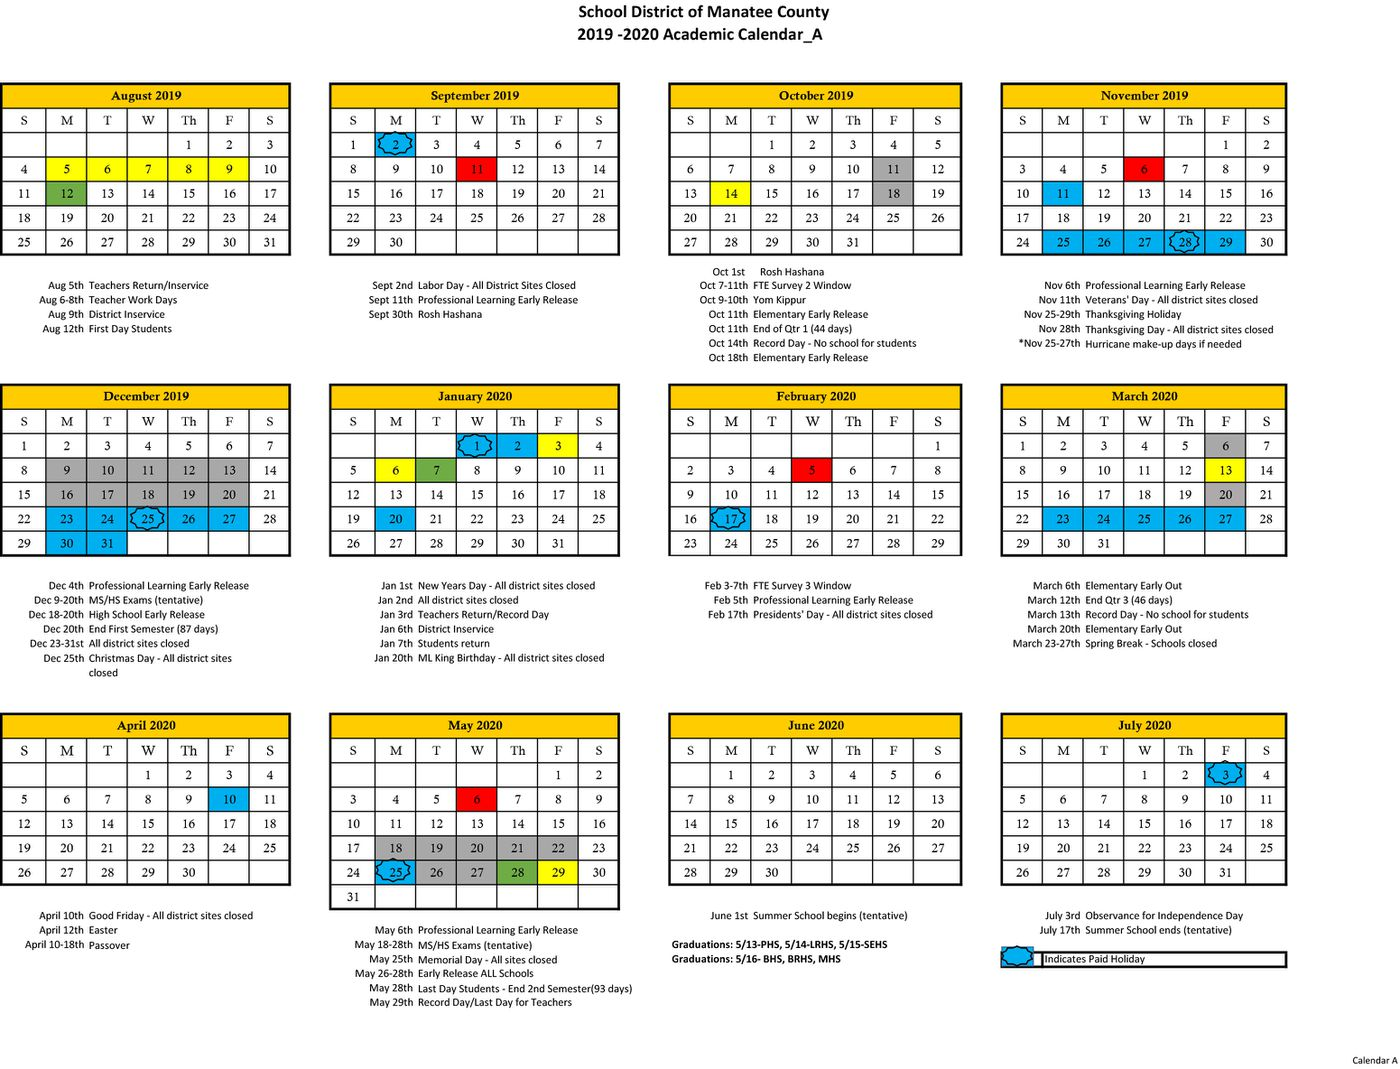 Sarasota County School Calendar 2020-21 Sarasota County ready to approve next year's school calendar   get